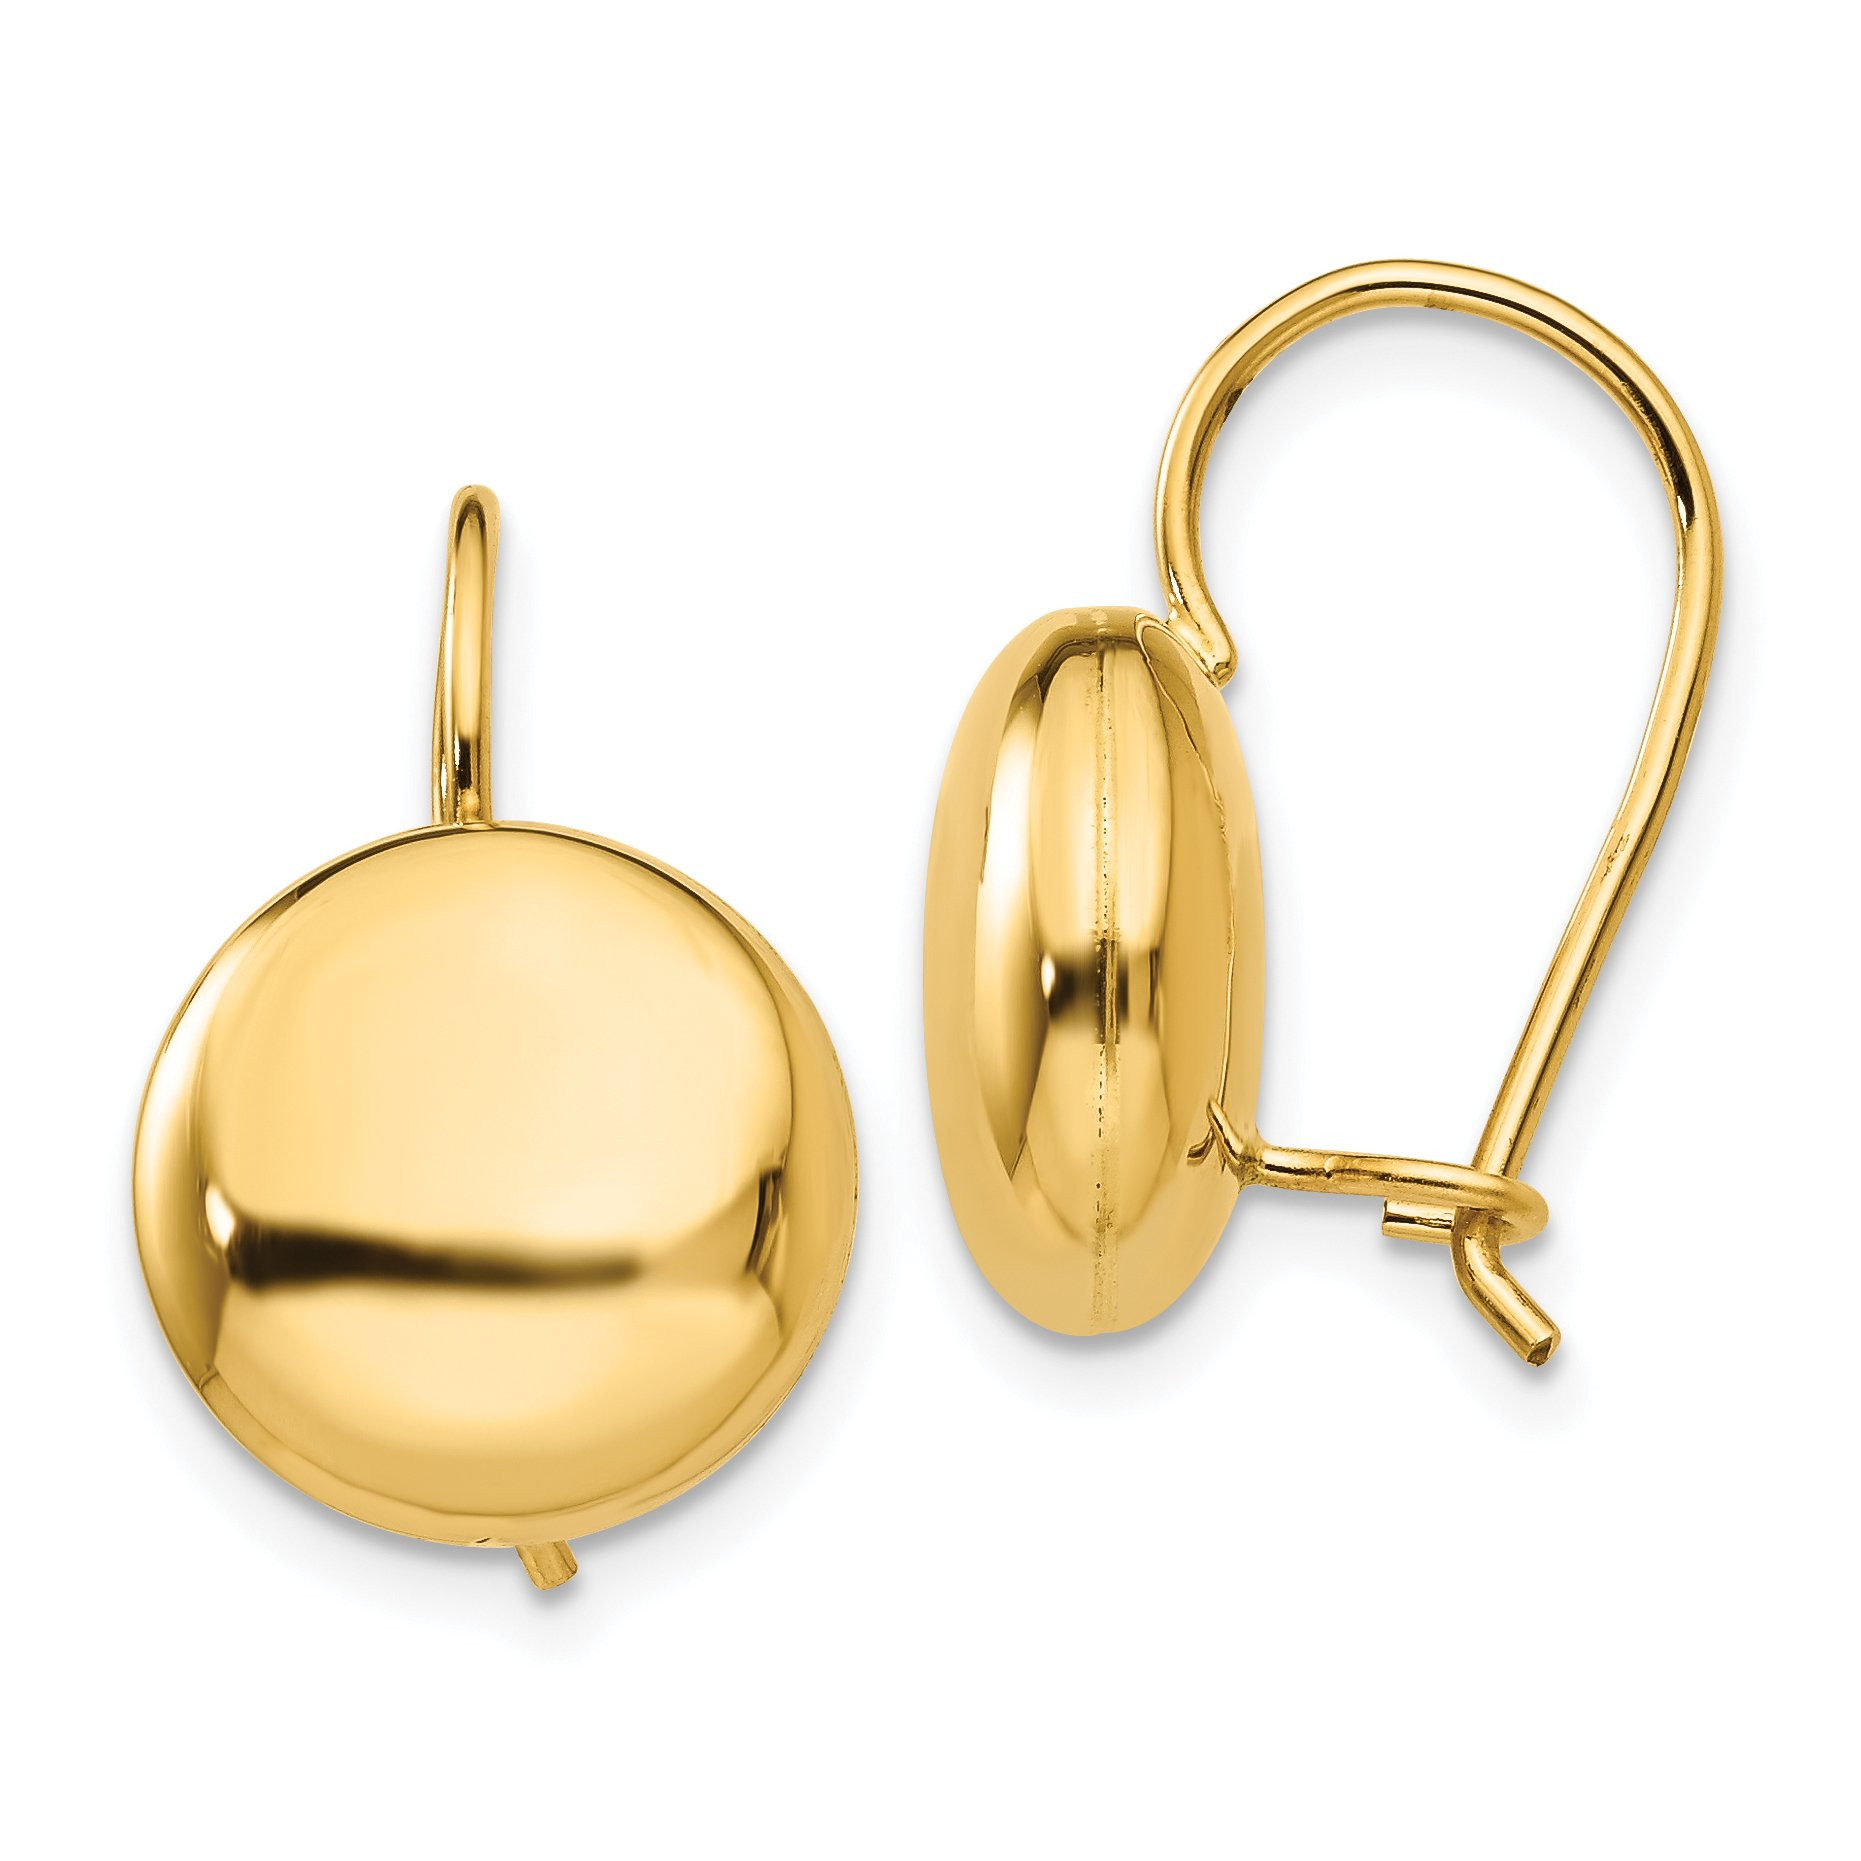 ICE CARATS 14k Yellow Gold 12mm Button Kidney Wire Ball Stud Earrings Fine Jewelry Gift Set For Women Heart